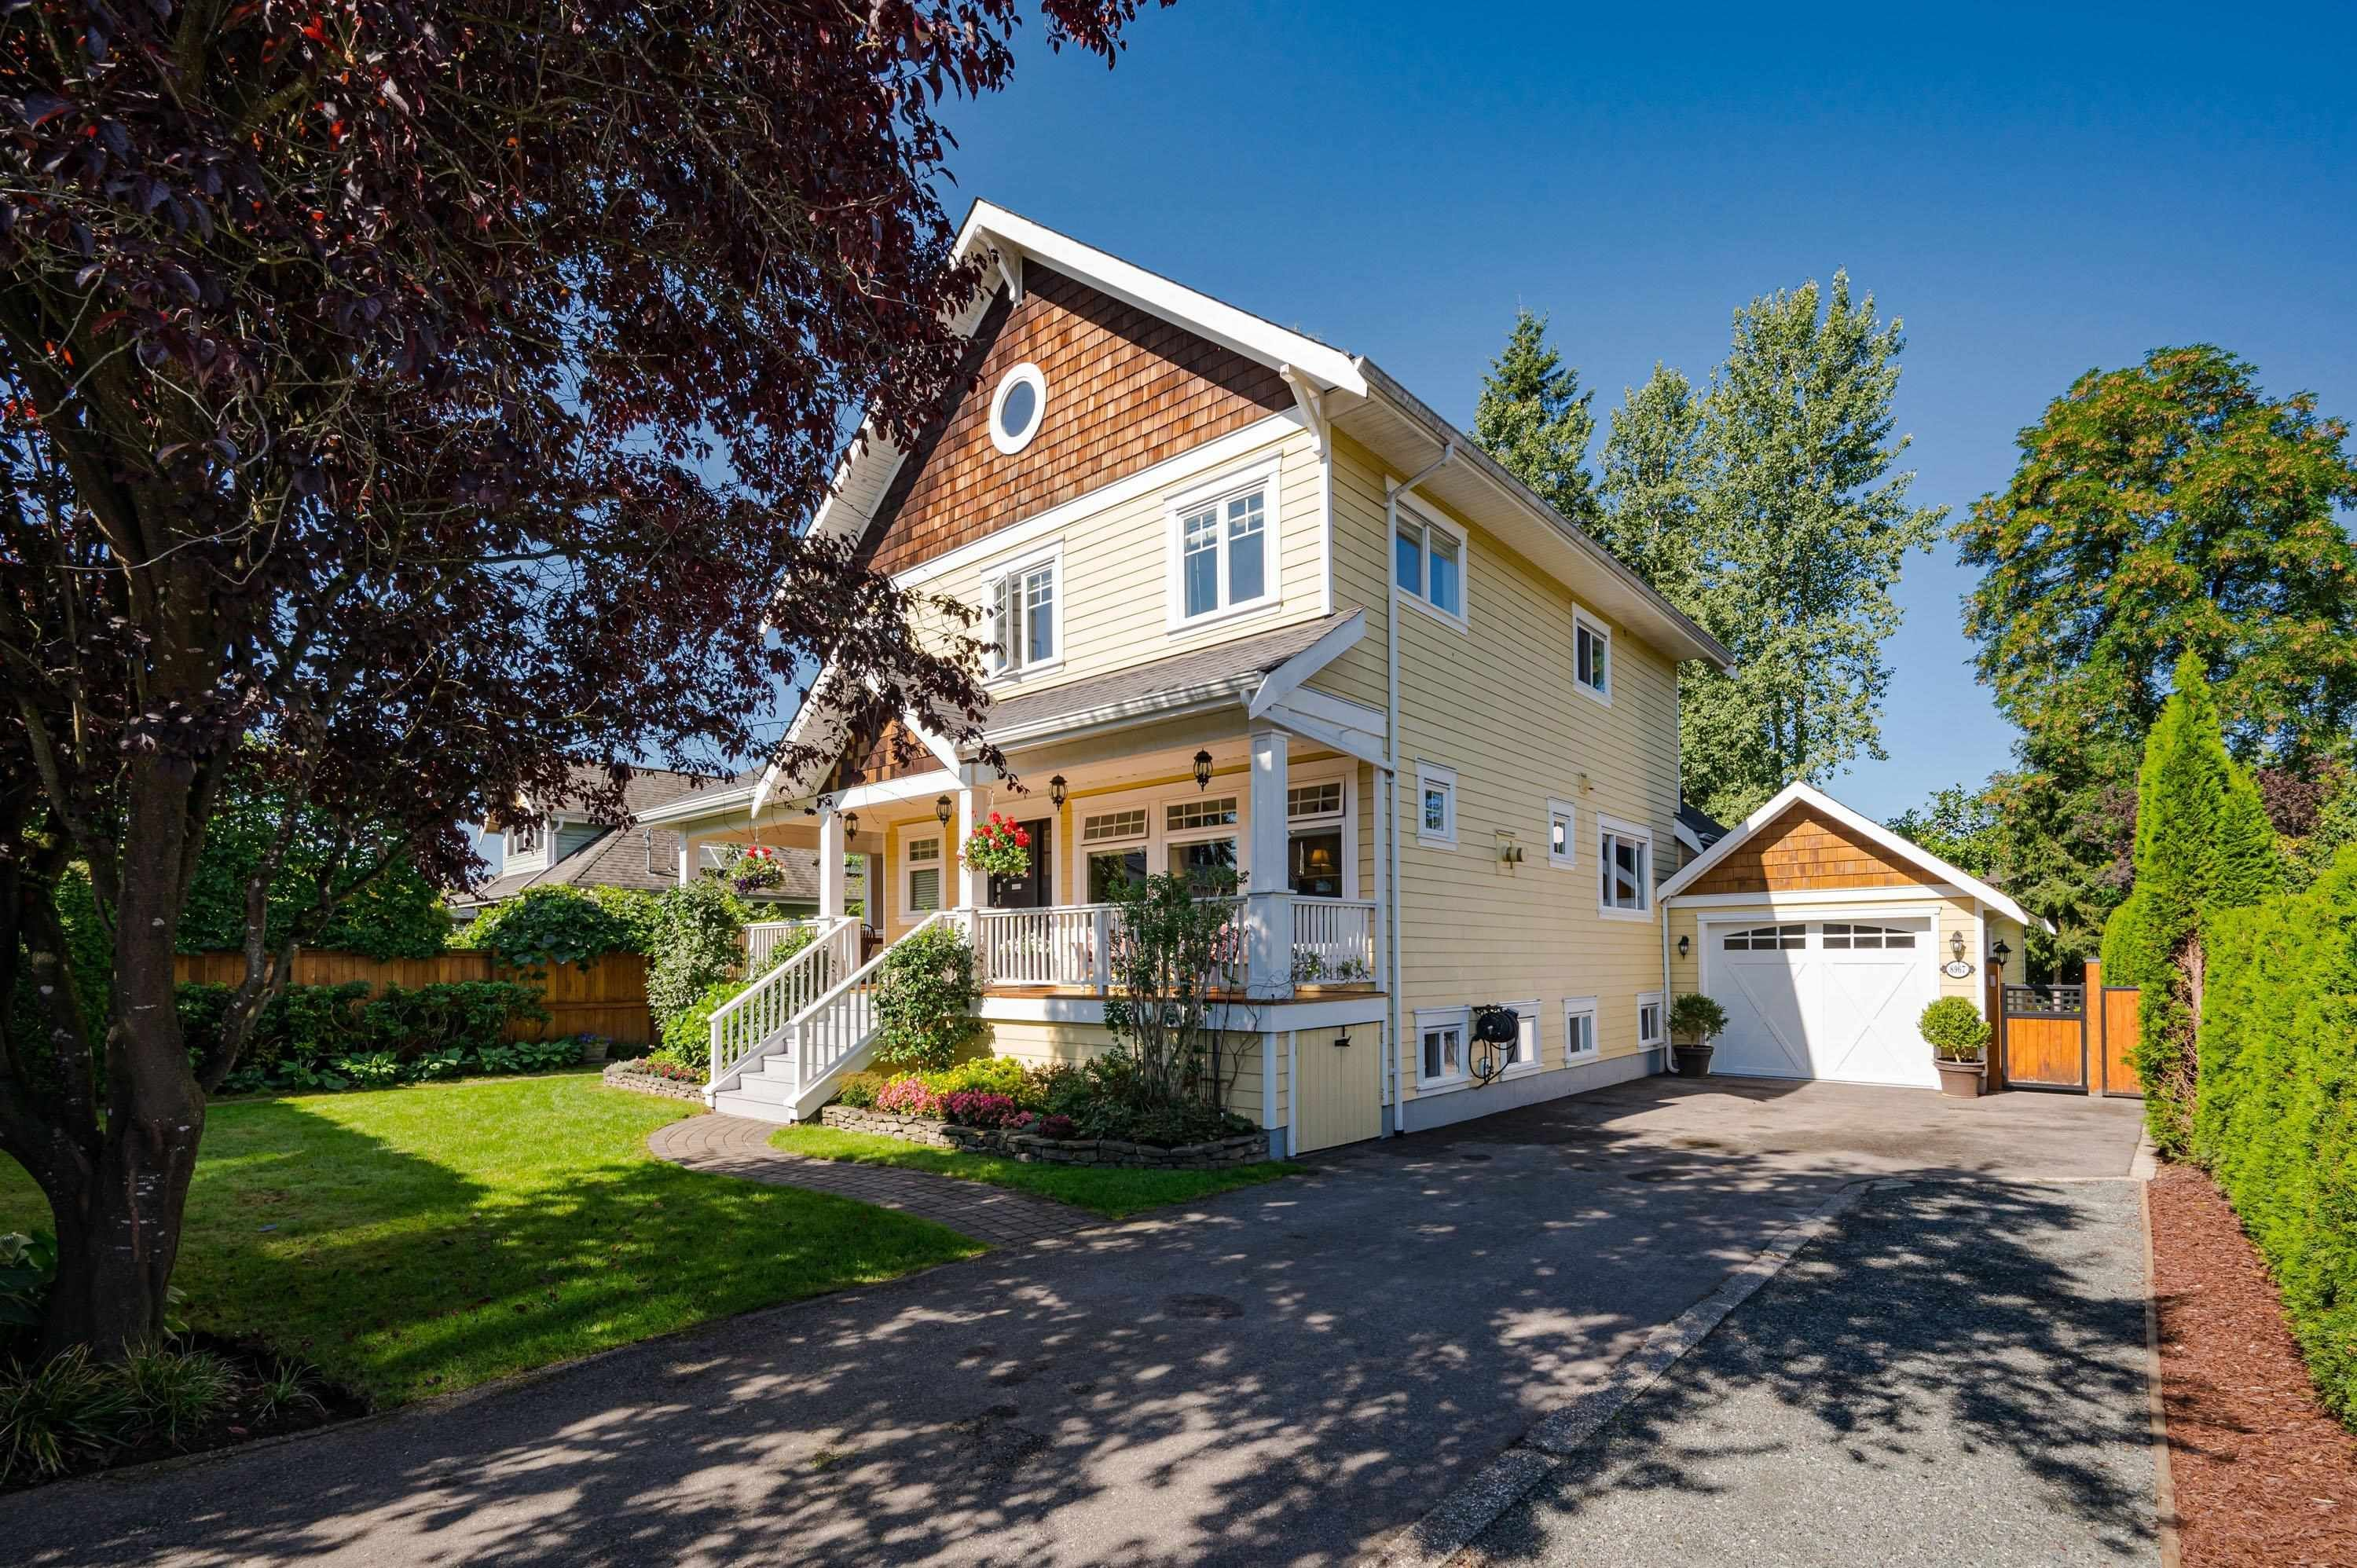 """Main Photo: 8967 MOWAT Street in Langley: Fort Langley House for sale in """"FORT LANGLEY"""" : MLS®# R2613045"""